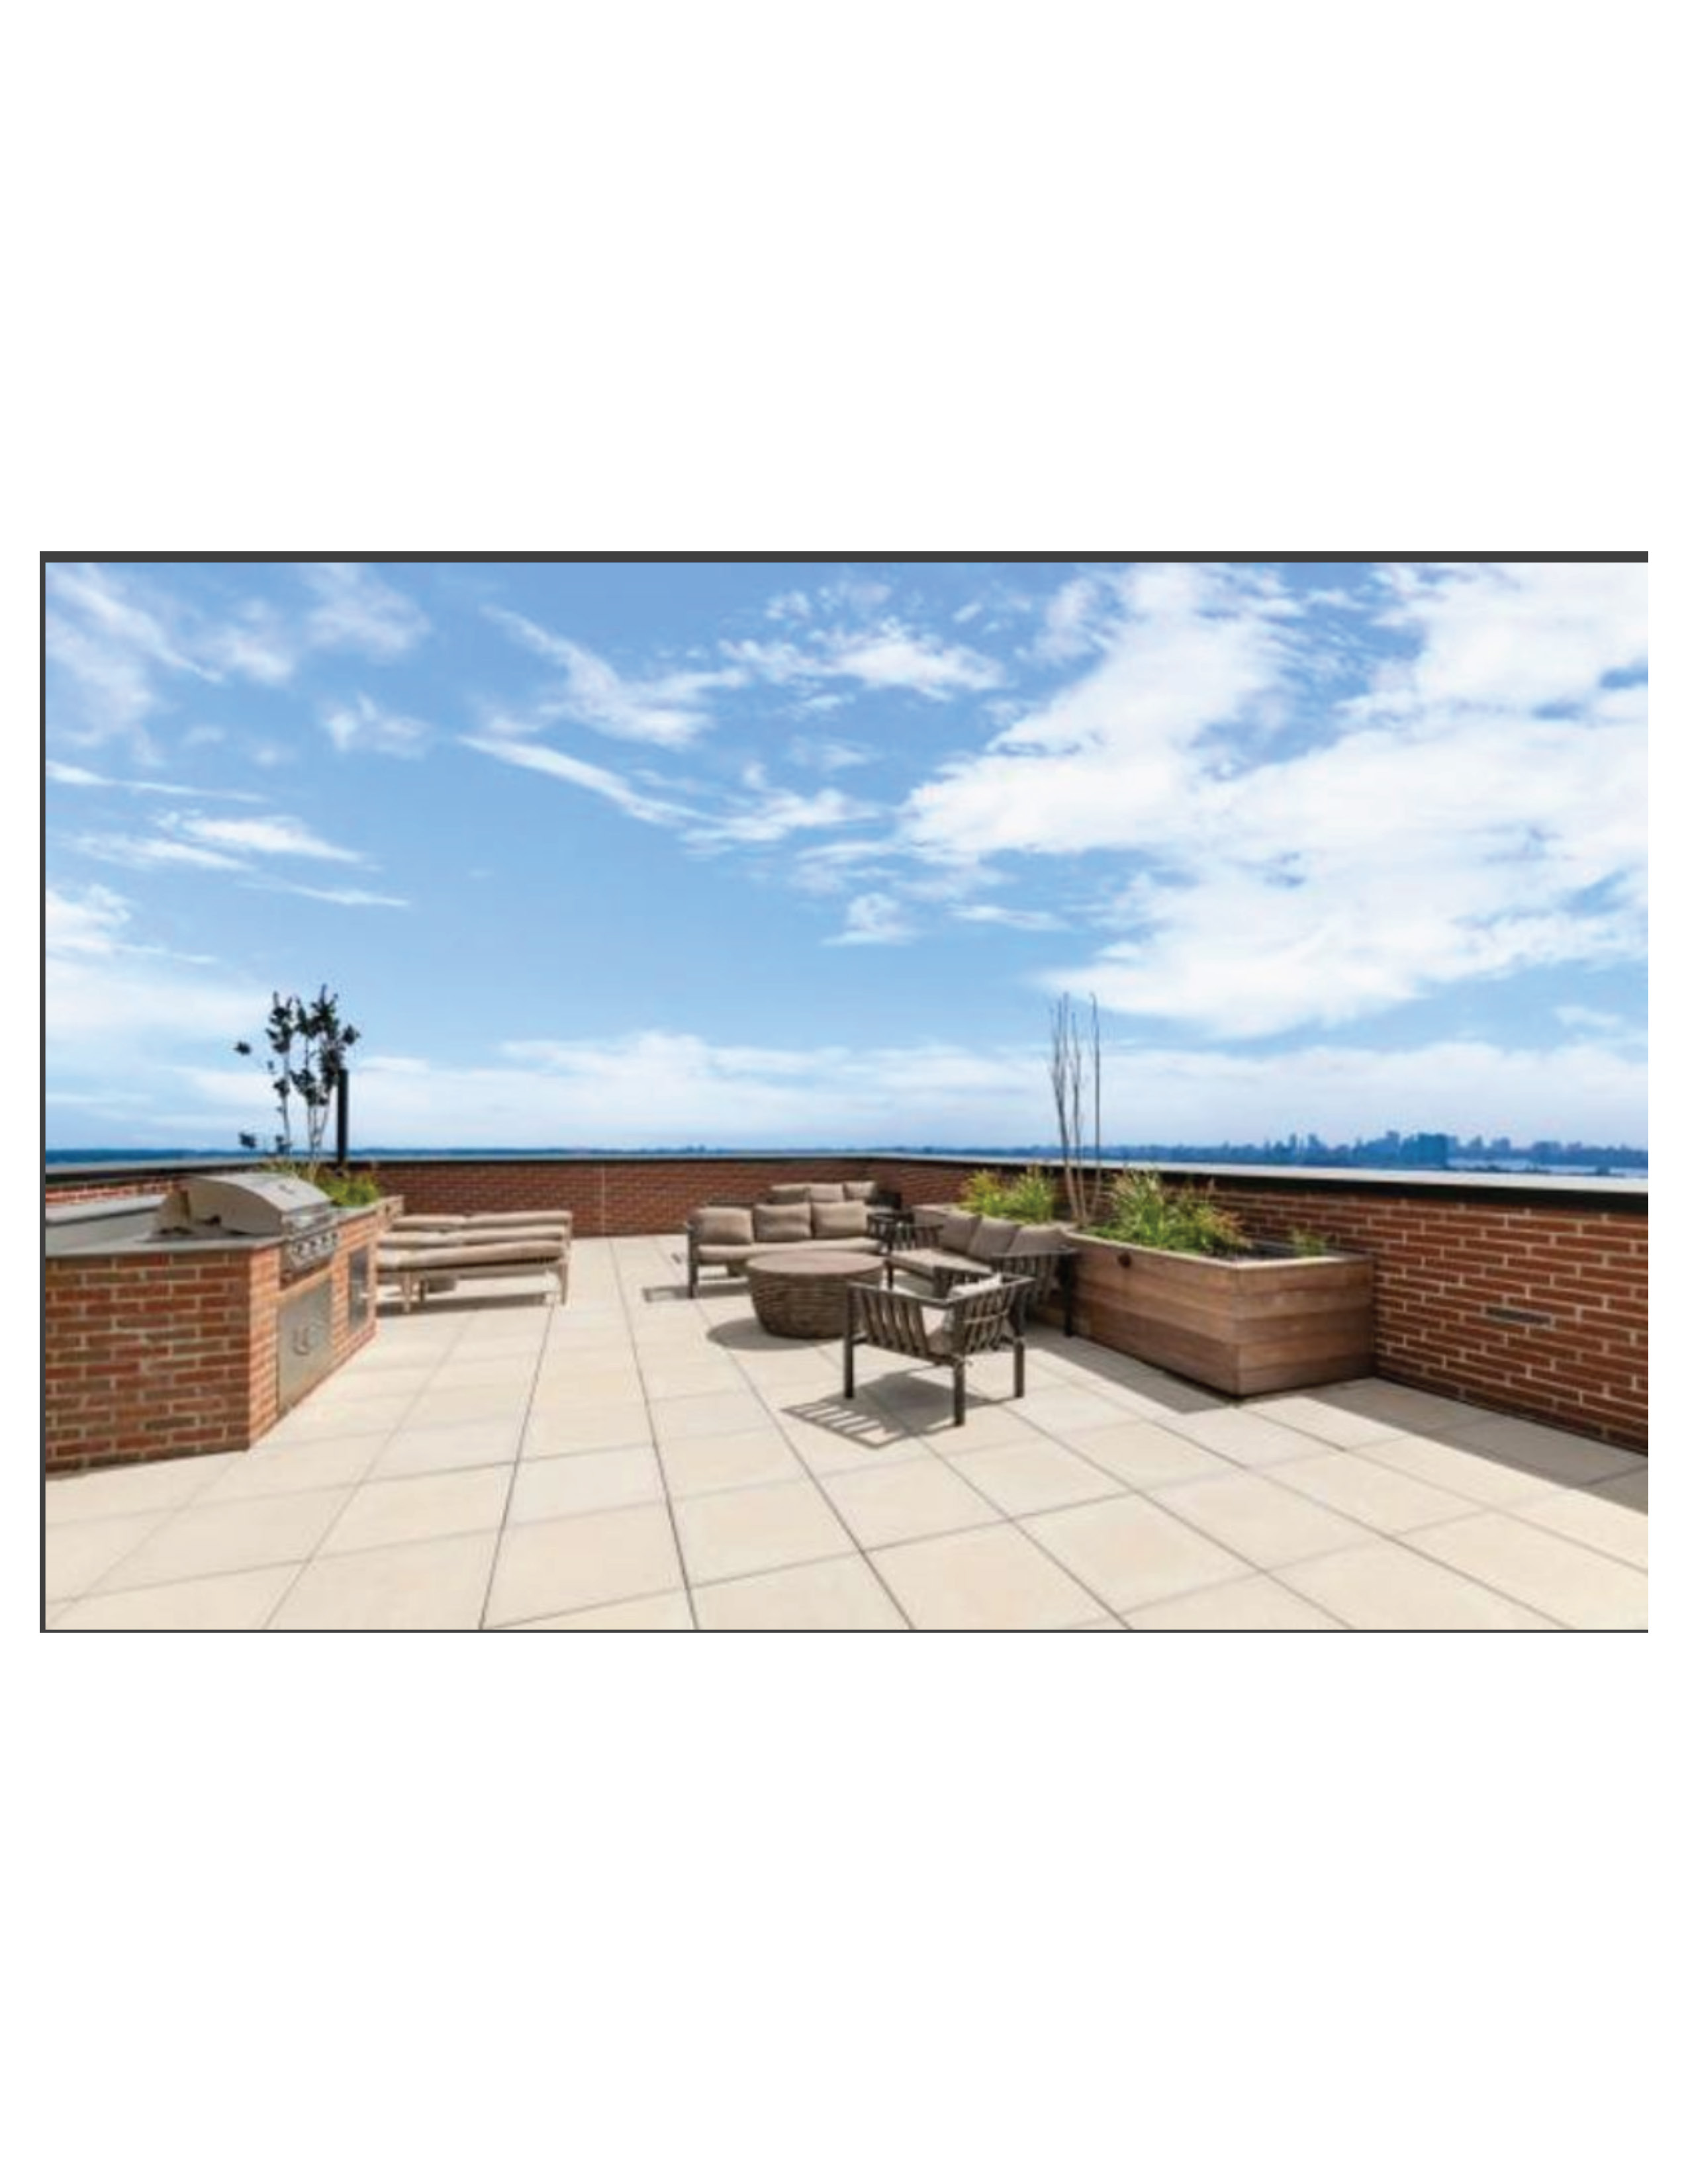 Apartment for sale at 27-21 44th Dr, Apt 505